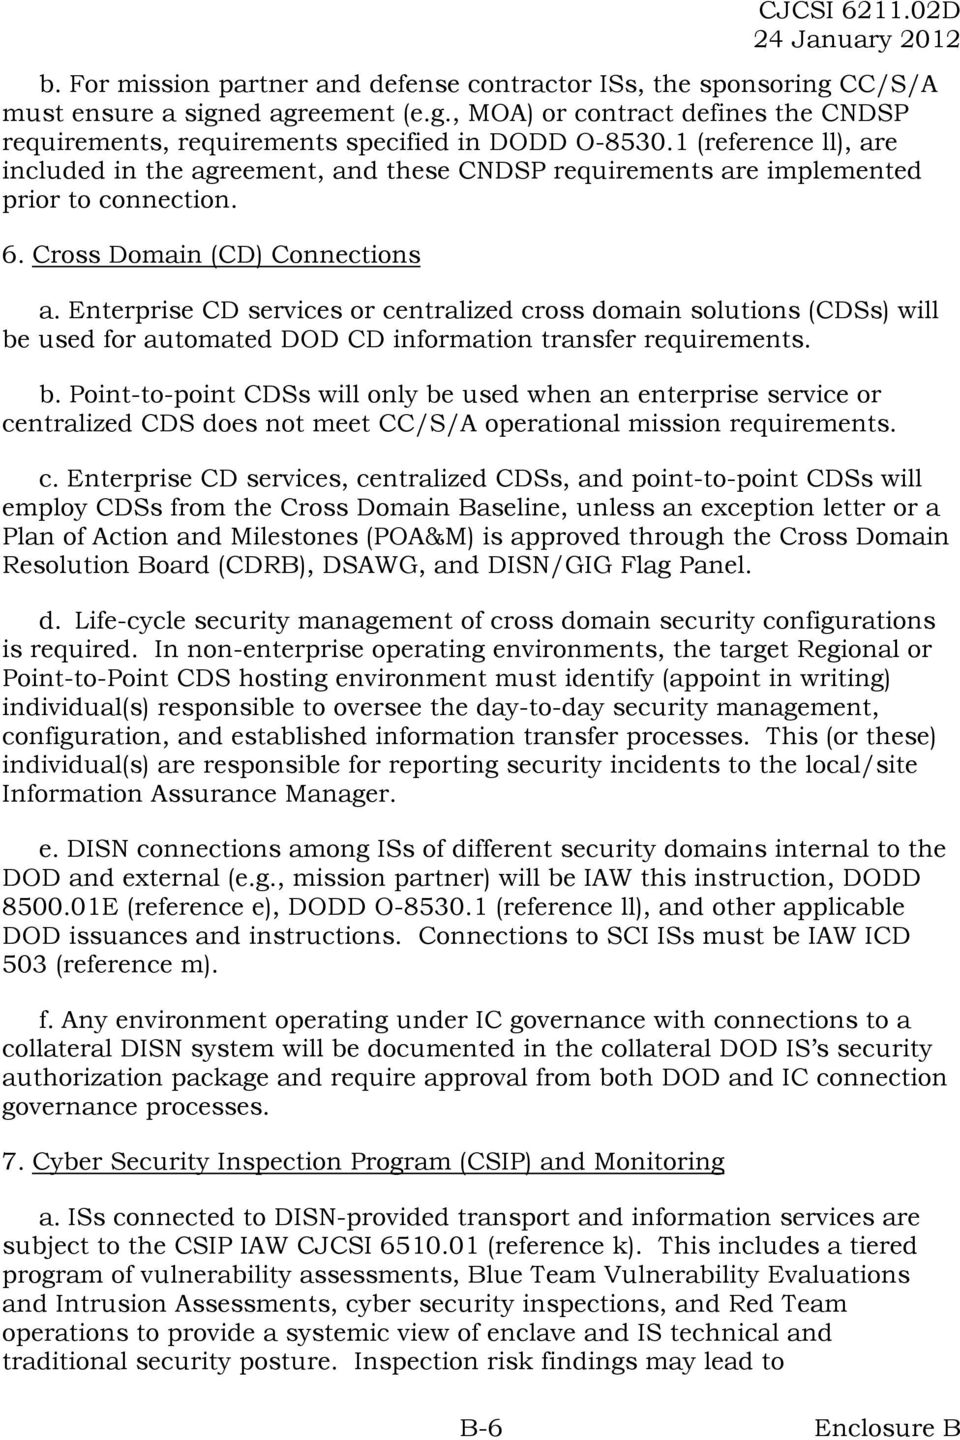 Enterprise CD services or centralized cross domain solutions (CDSs) will be